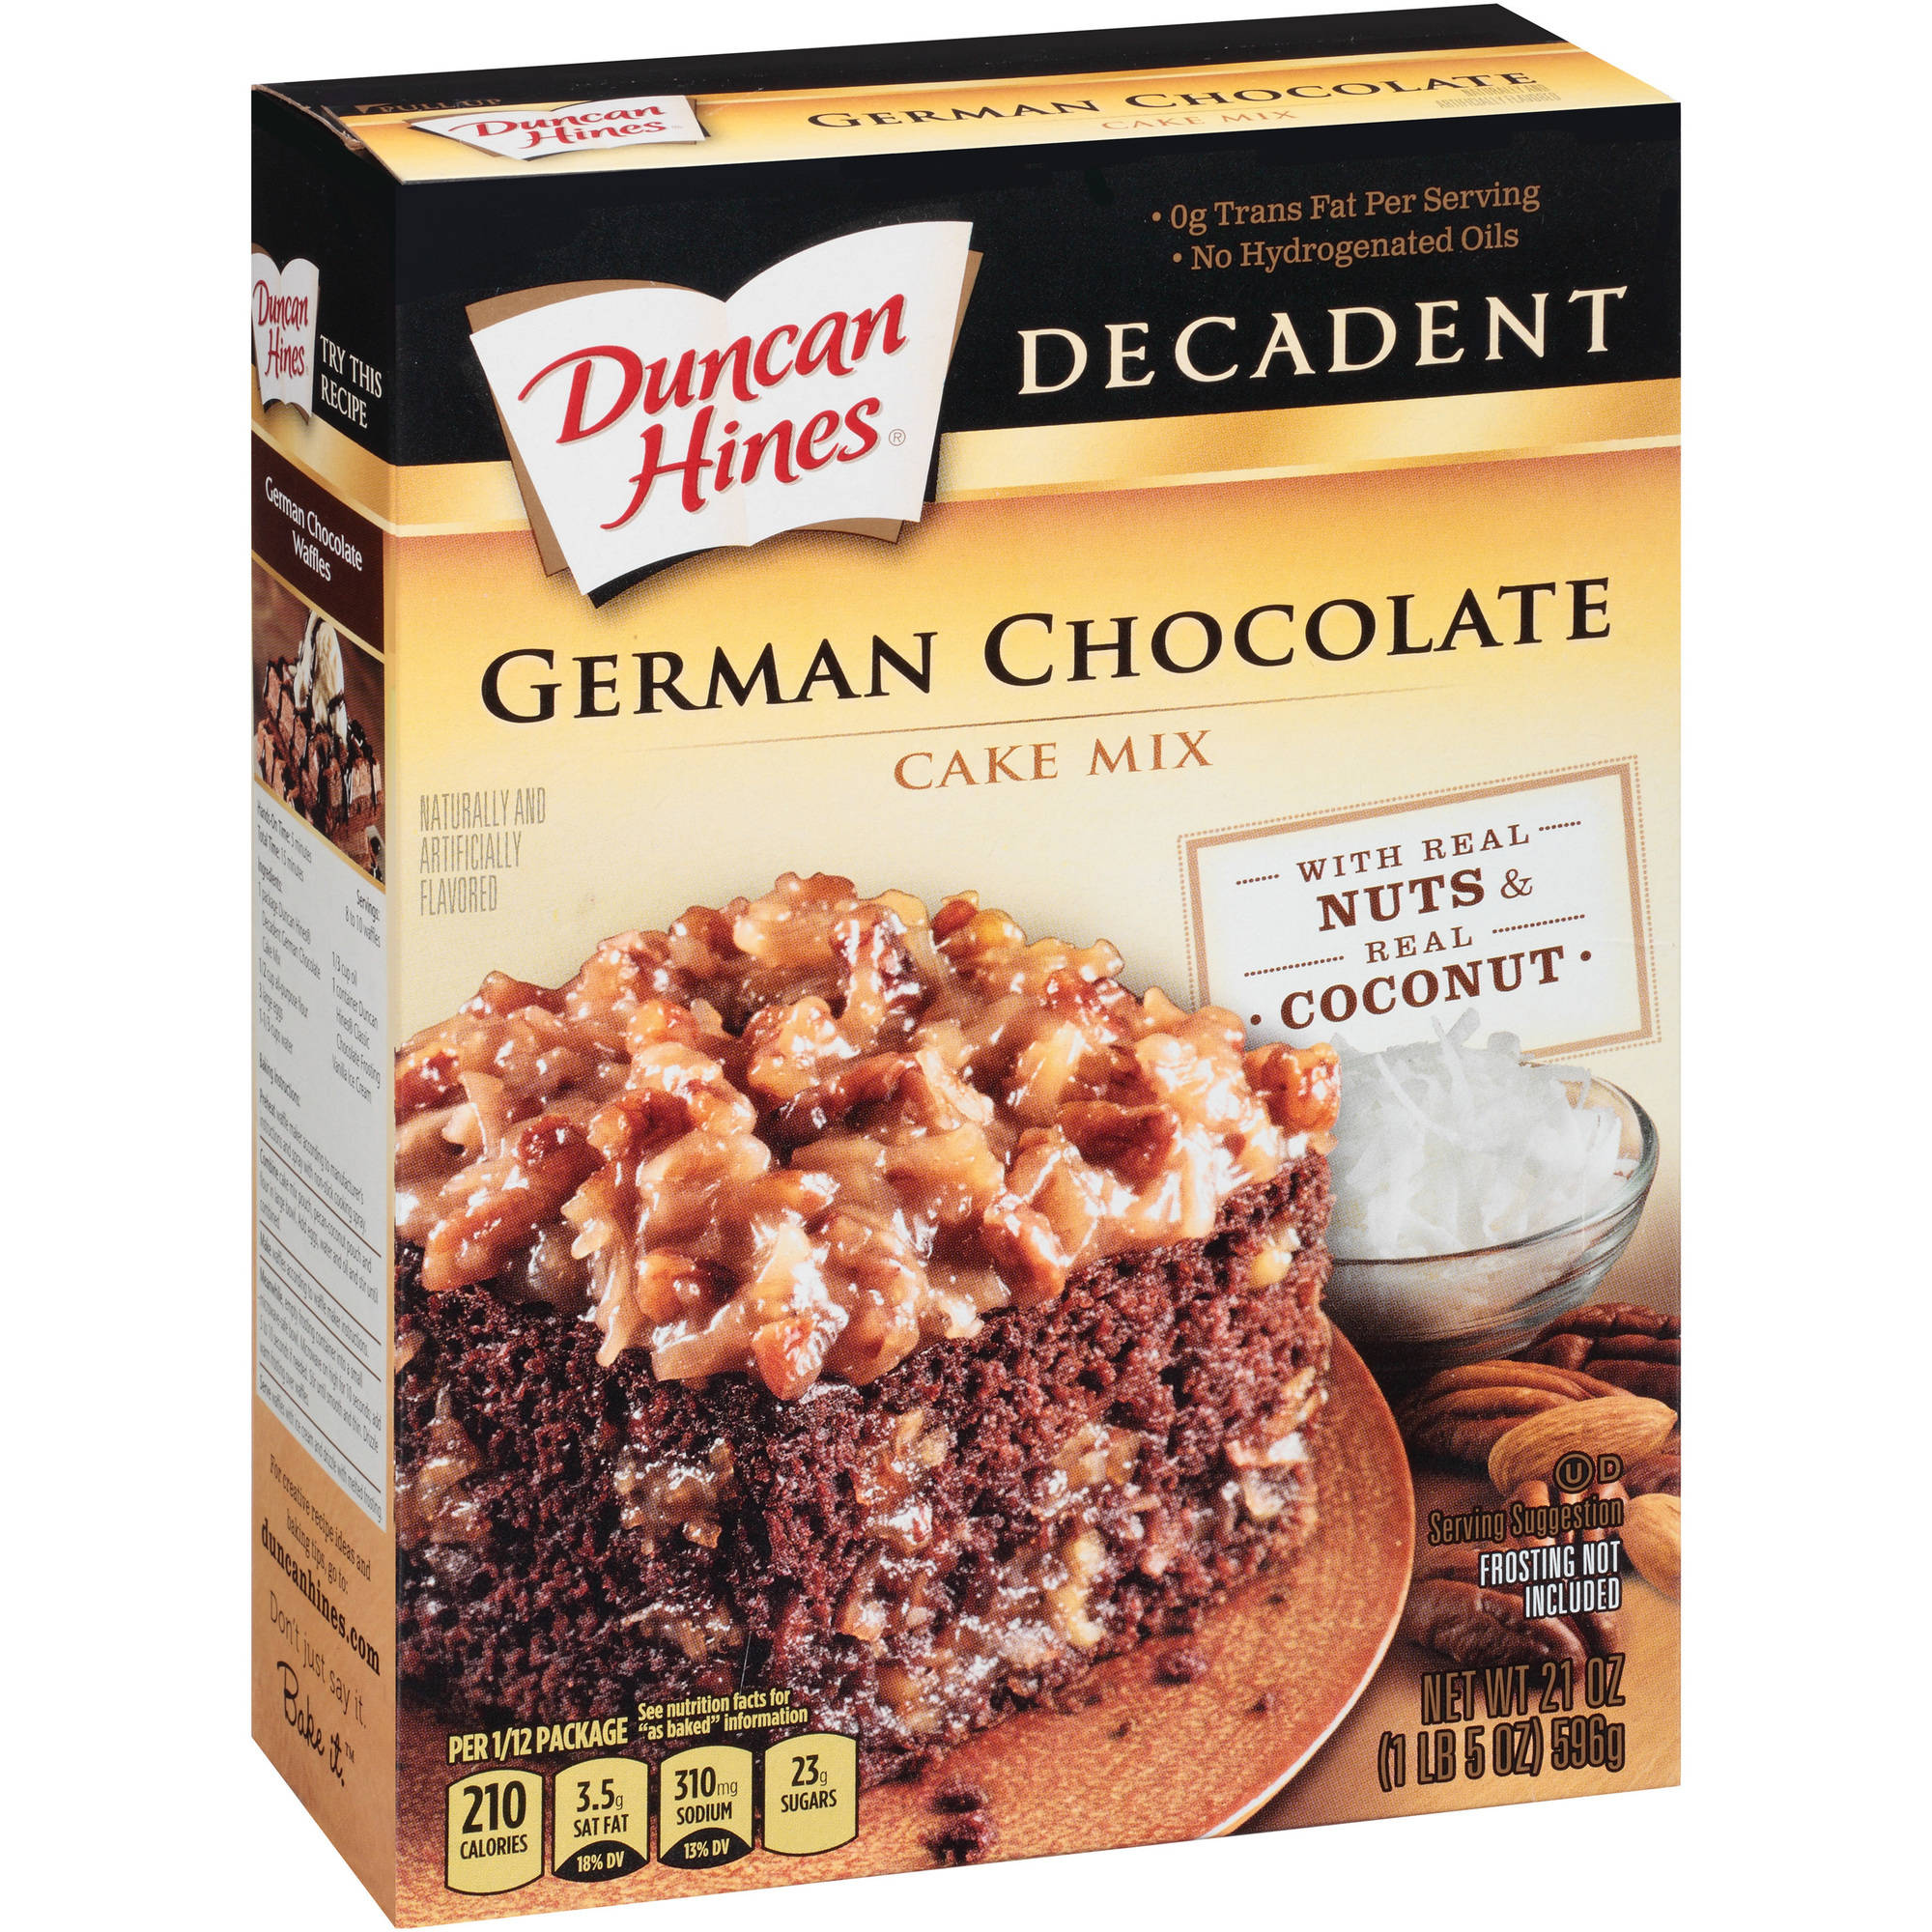 Duncan Hines Decadent German Chocolate Cake Mix, 21 oz